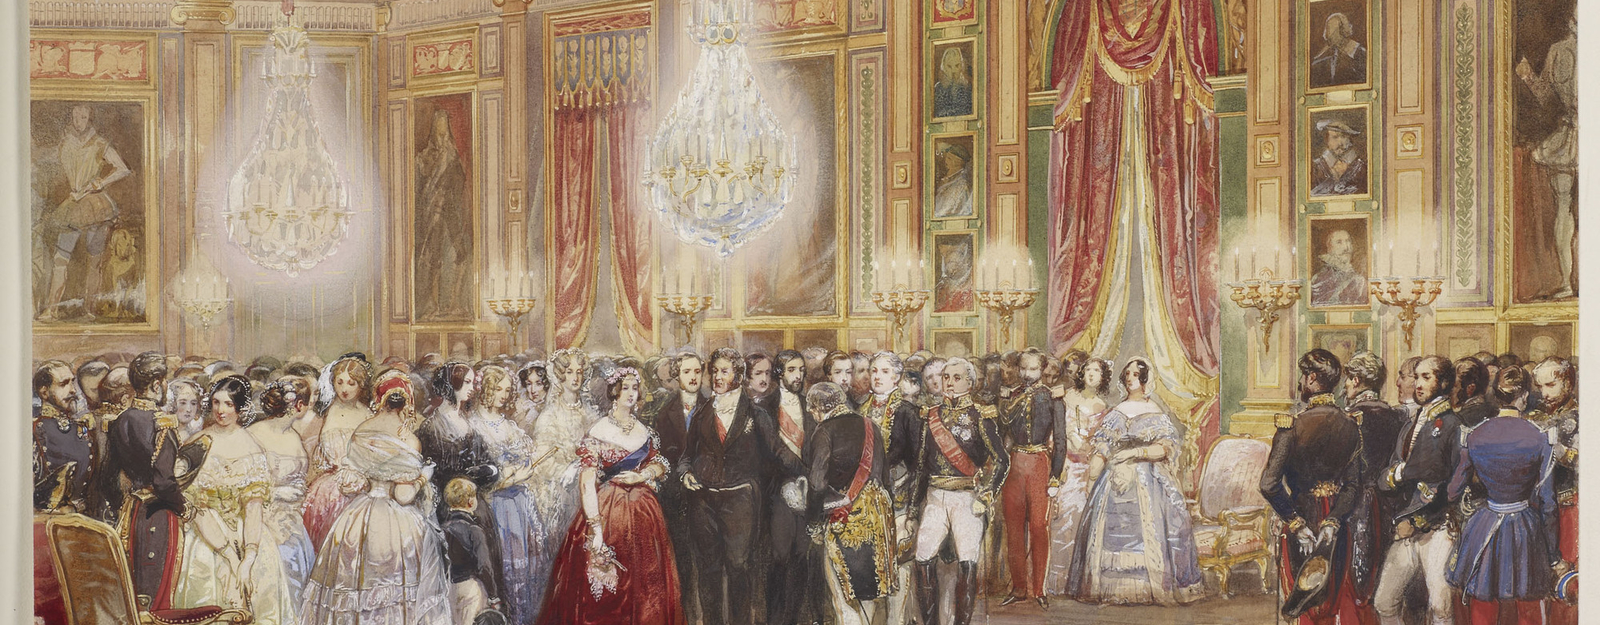 DM 3136: the Royal Party in the Galerie.  Behind the Queen and Louis-Philippe can be seen the duchesse d'Orleans with her elder son, the Queen of the Belgians, Mme Adélaide, Queen Marie-Amélie, Prince Albert  etc.  Signed and dated.